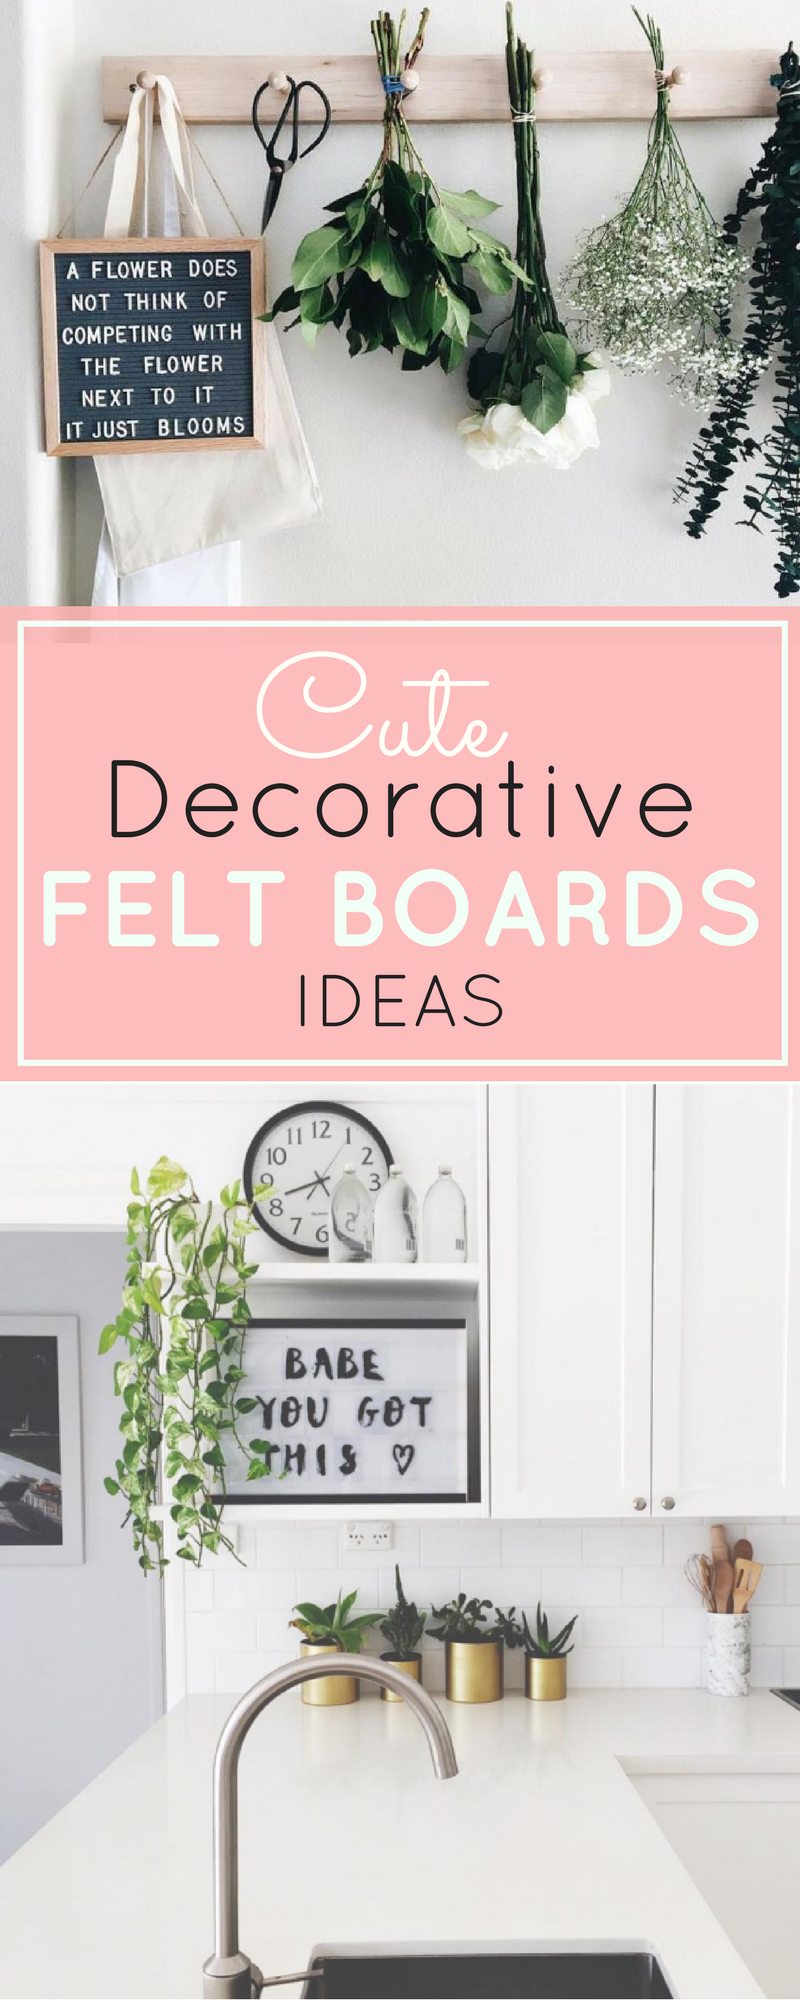 The Coolest Customizable Art: Felt Letter Boards and Black Light Boxes, plus where to buy them. | glitterinc.com | @glitterinc